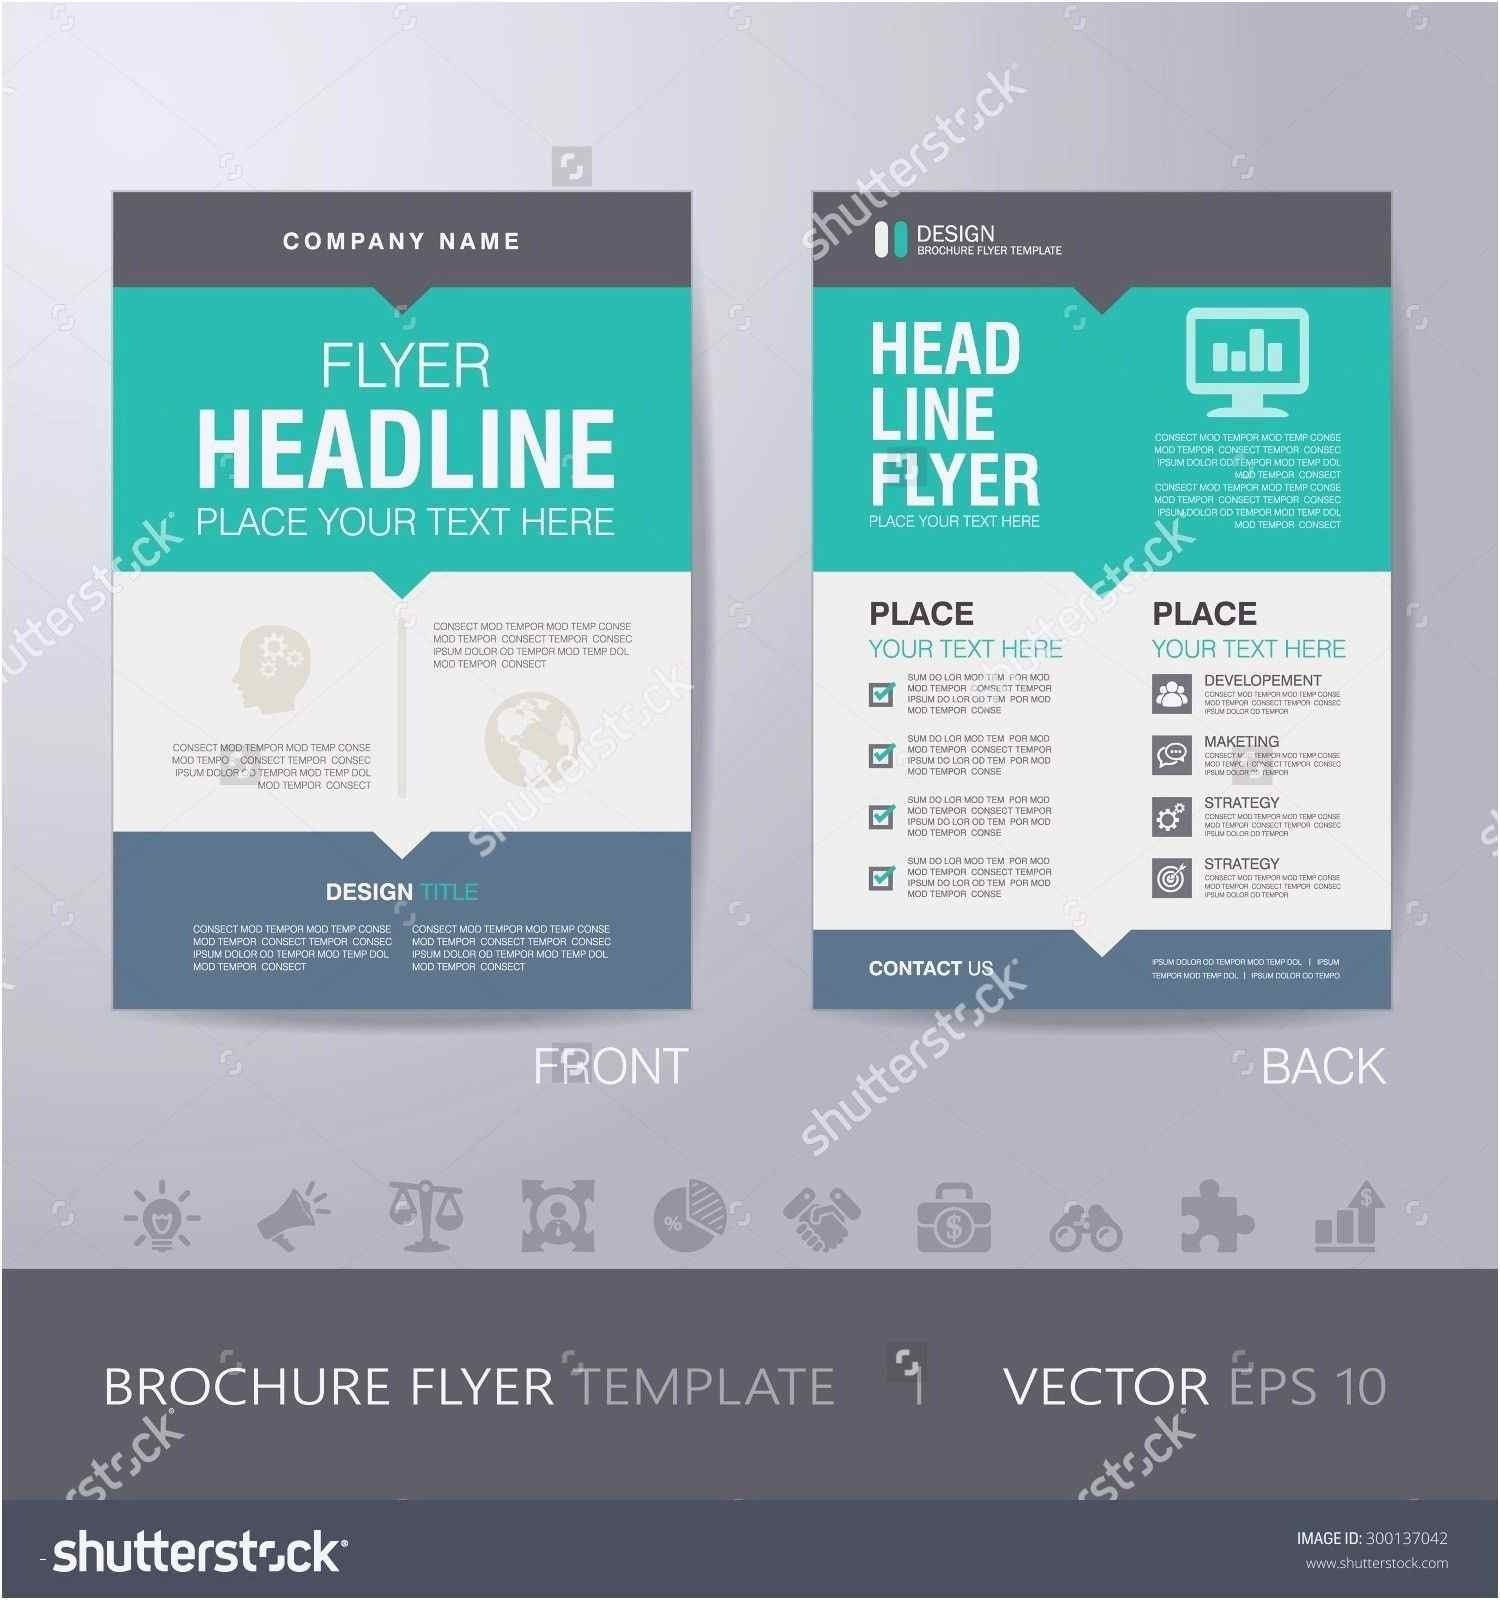 excel templates organizational chart free or create org chart in powerpoint awesome block chart powerpoint for excel templates organizational chart free